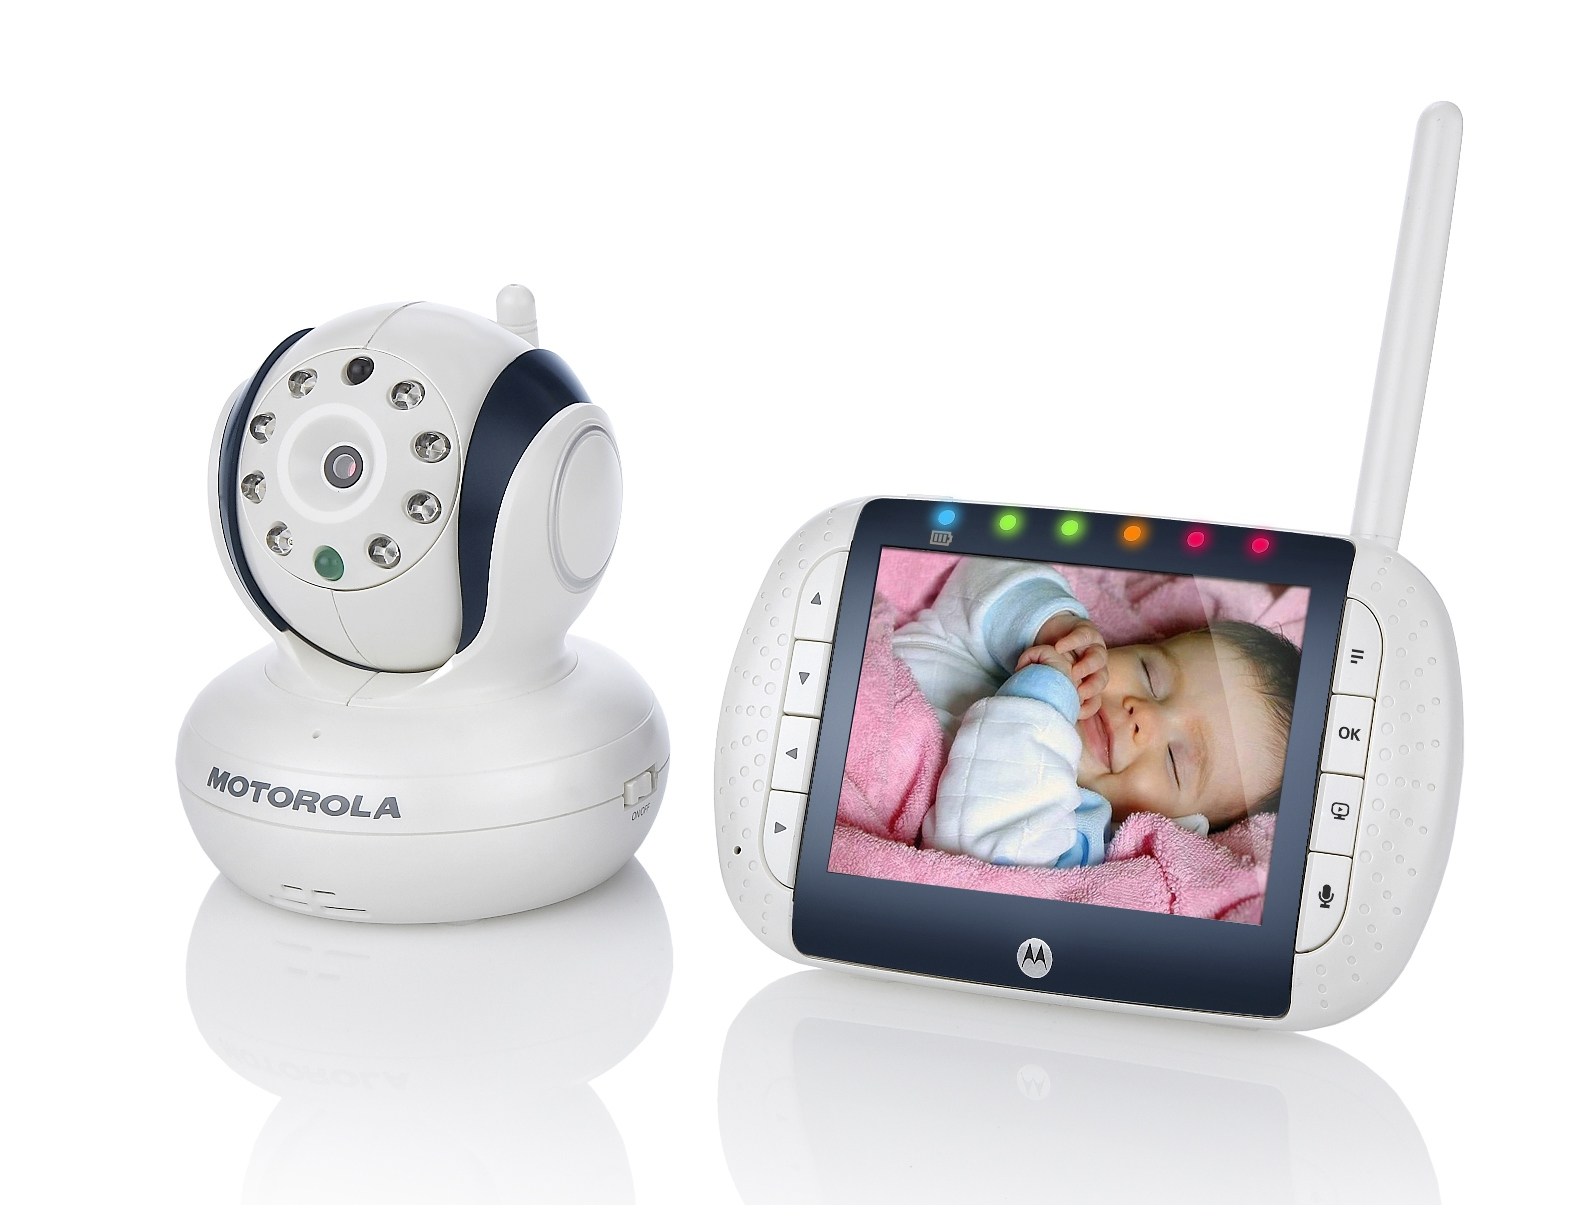 file mbp36 digital video baby monitor wikimedia commons. Black Bedroom Furniture Sets. Home Design Ideas